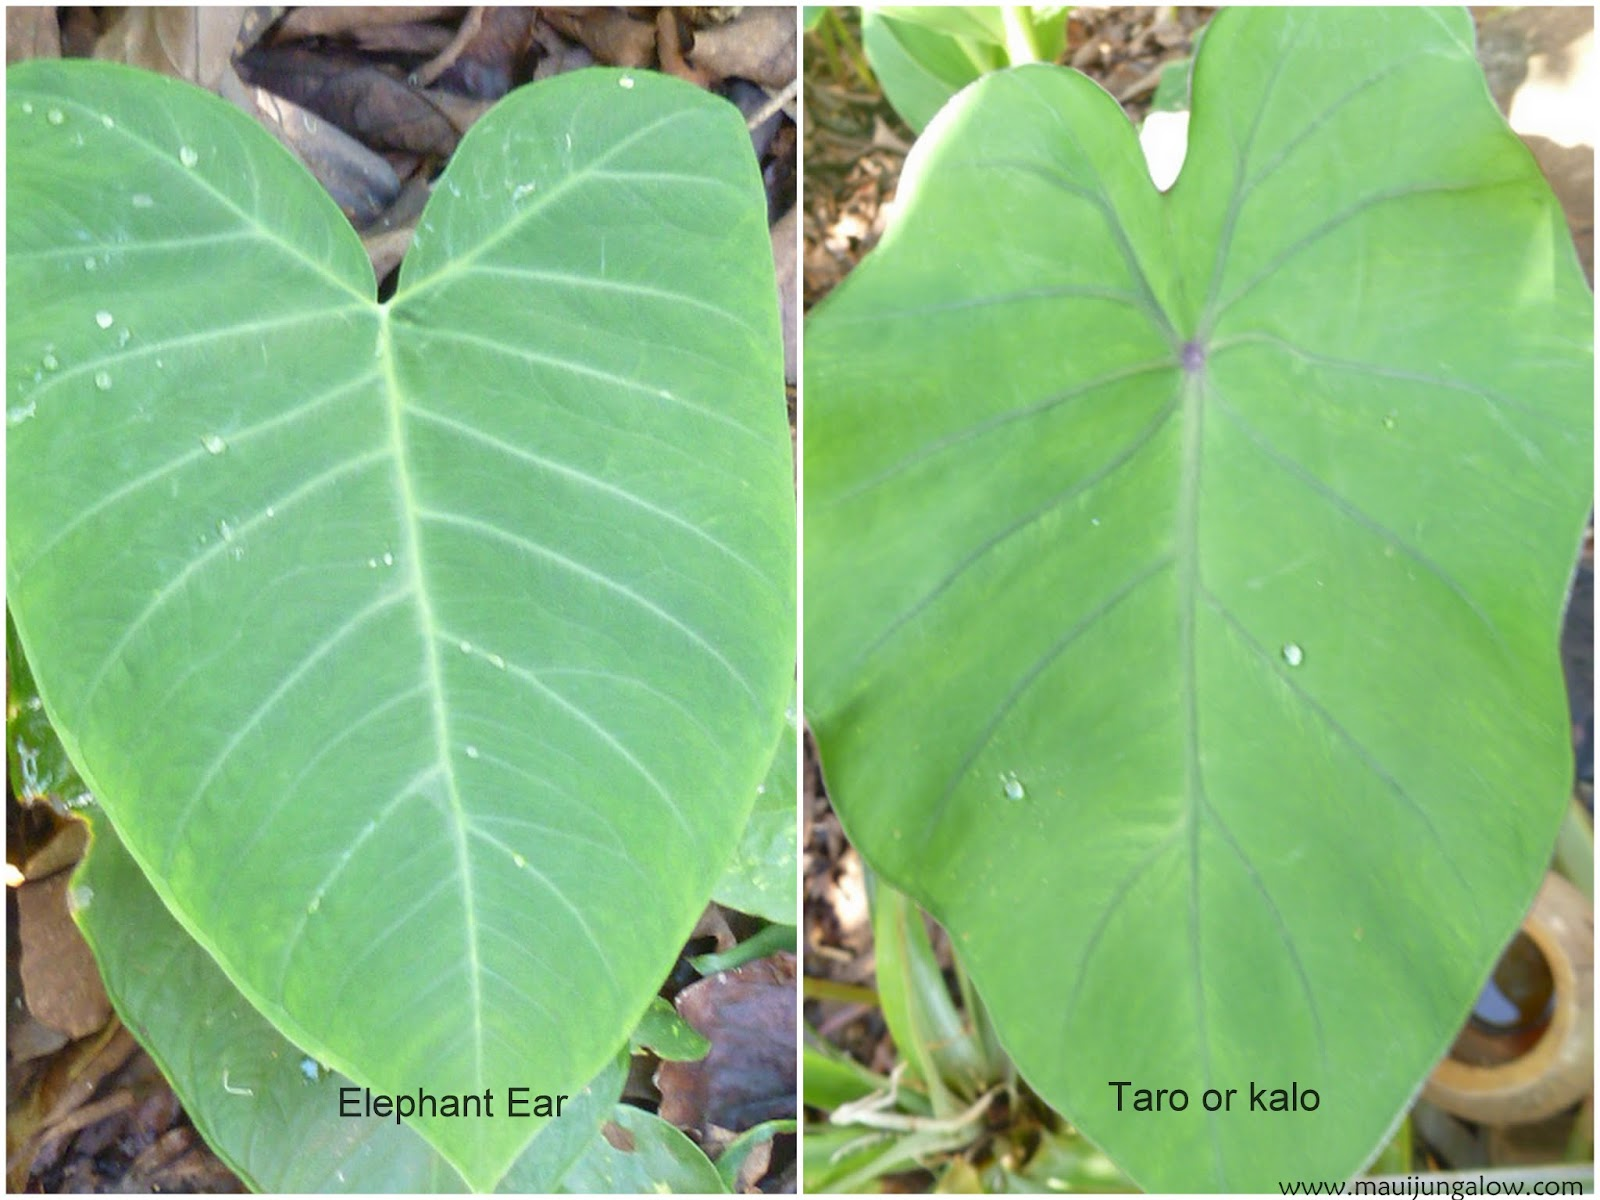 Photo On Left Is Elephant Ear It S More Linear And Angular The Piko Where Veins Meet At Edge Of Leaf Notch